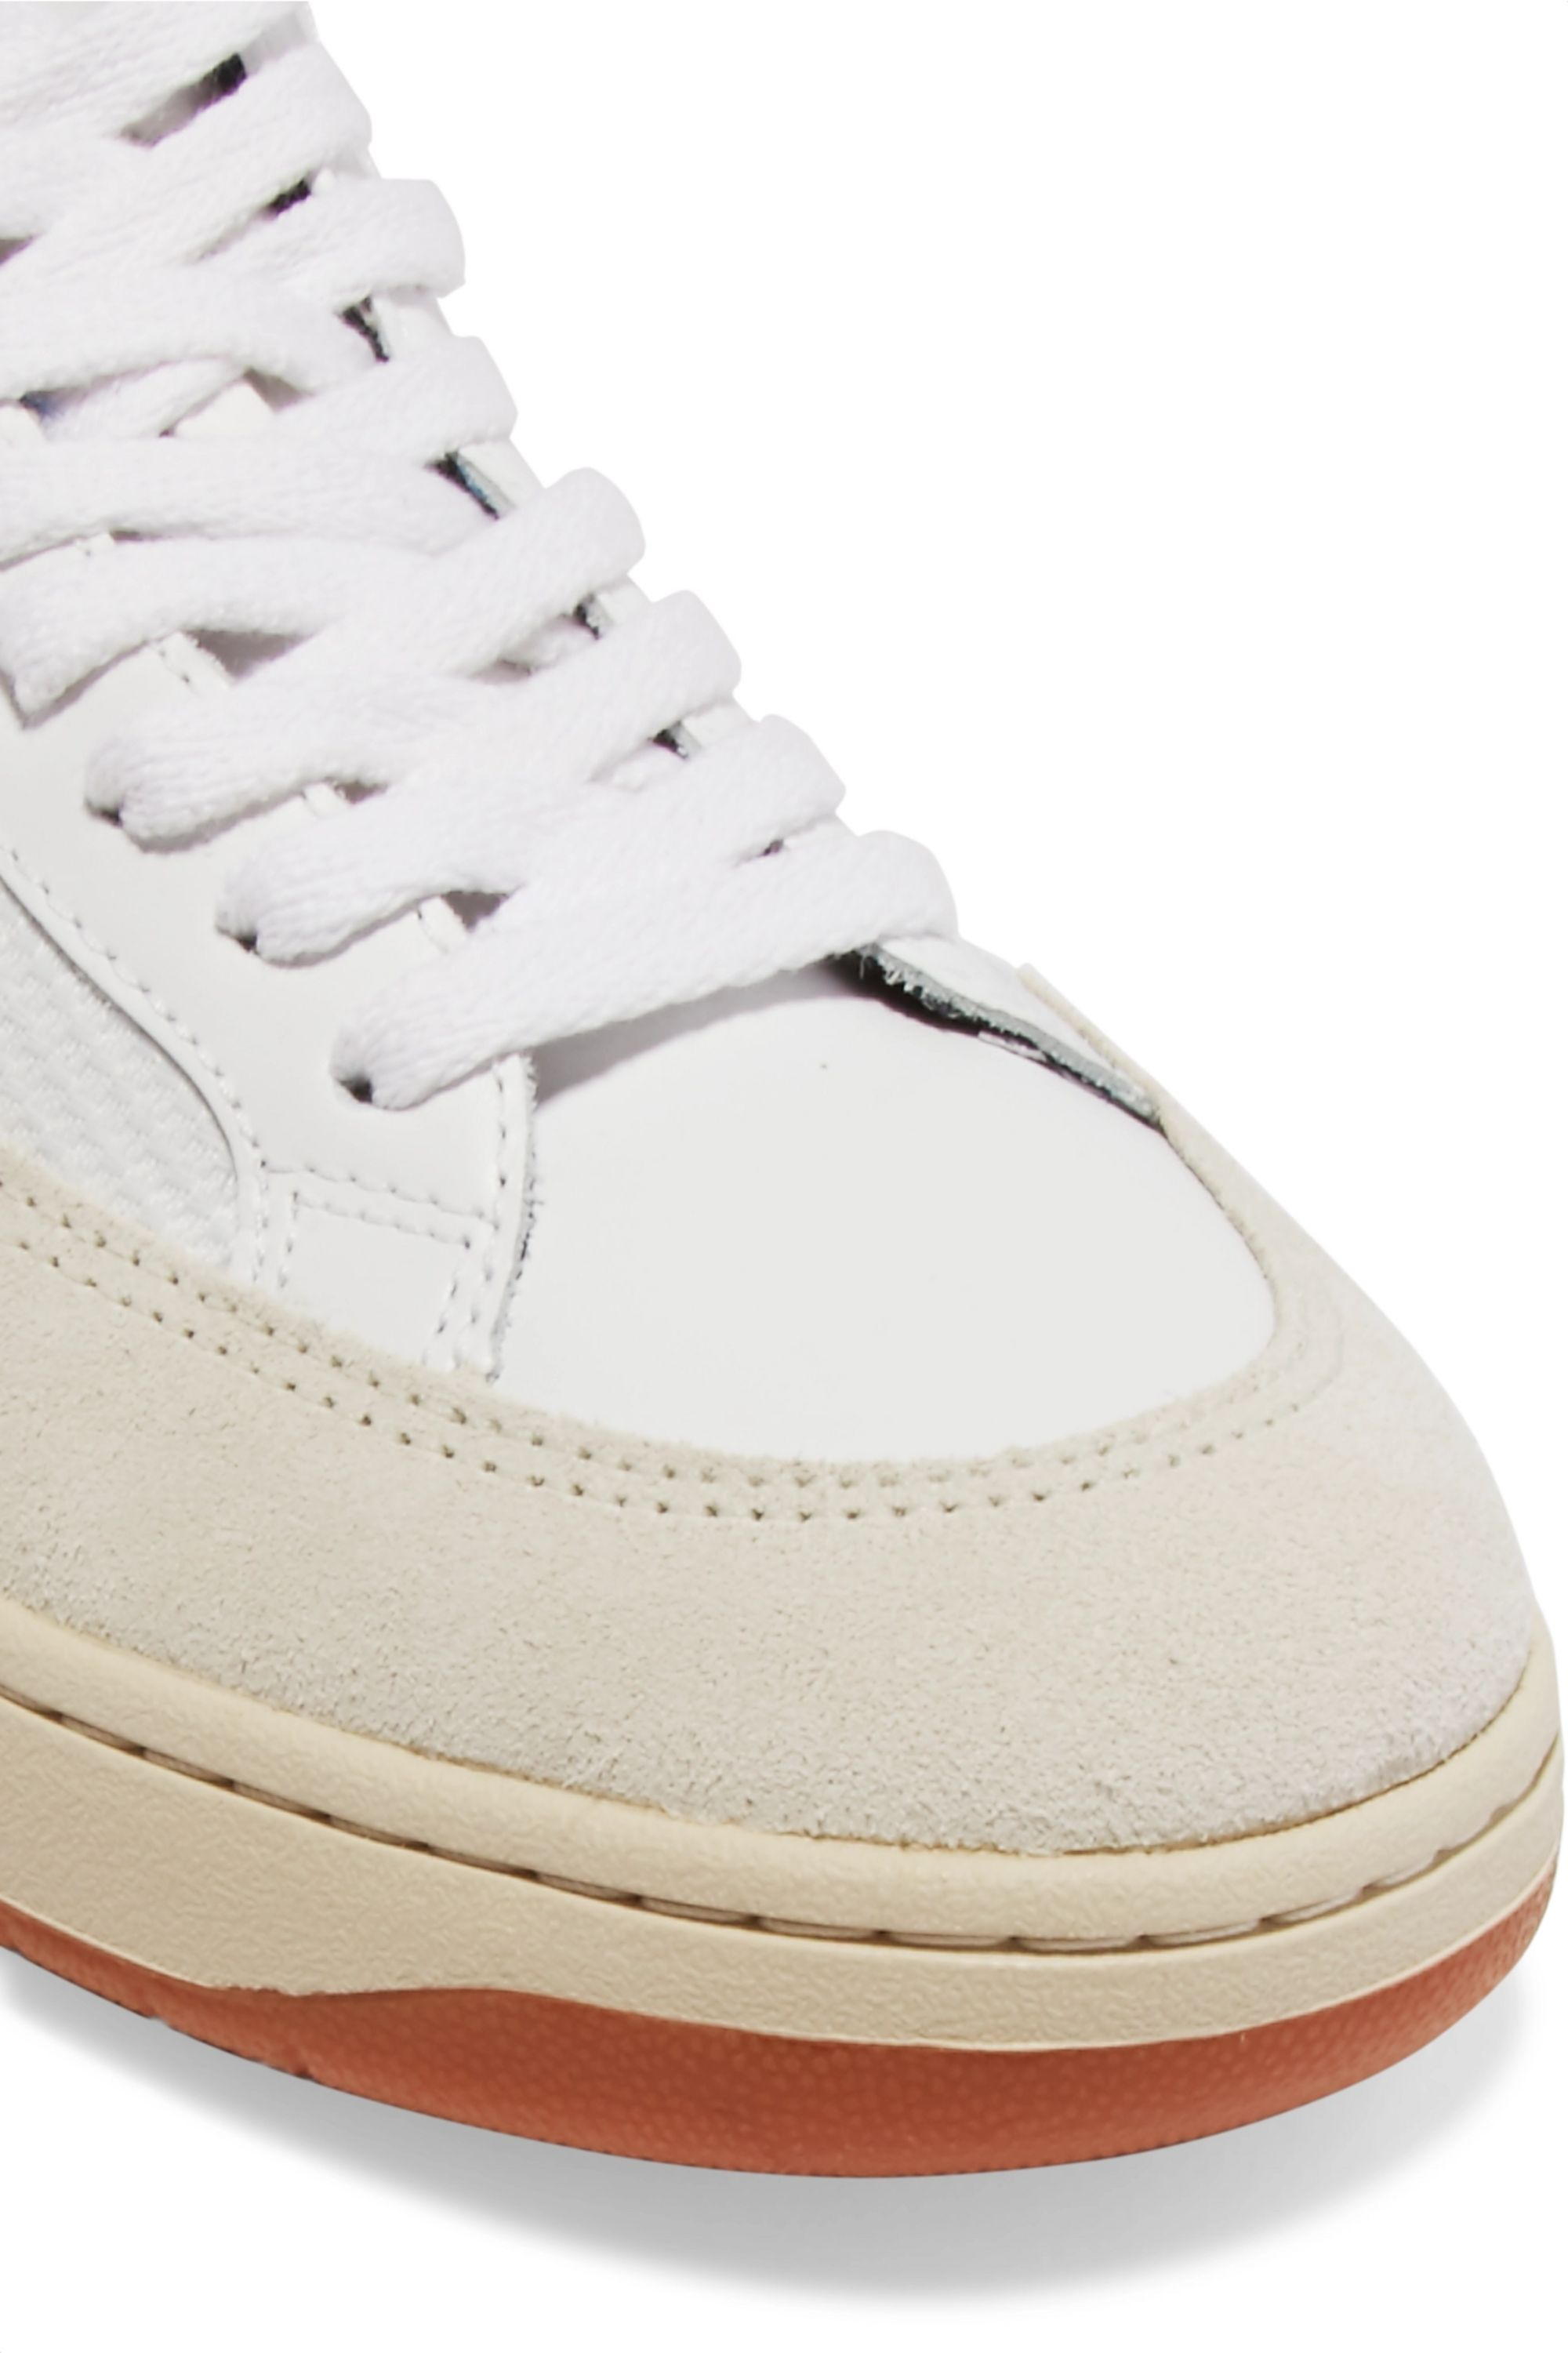 Veja V-12 mesh, leather and nubuck sneakers